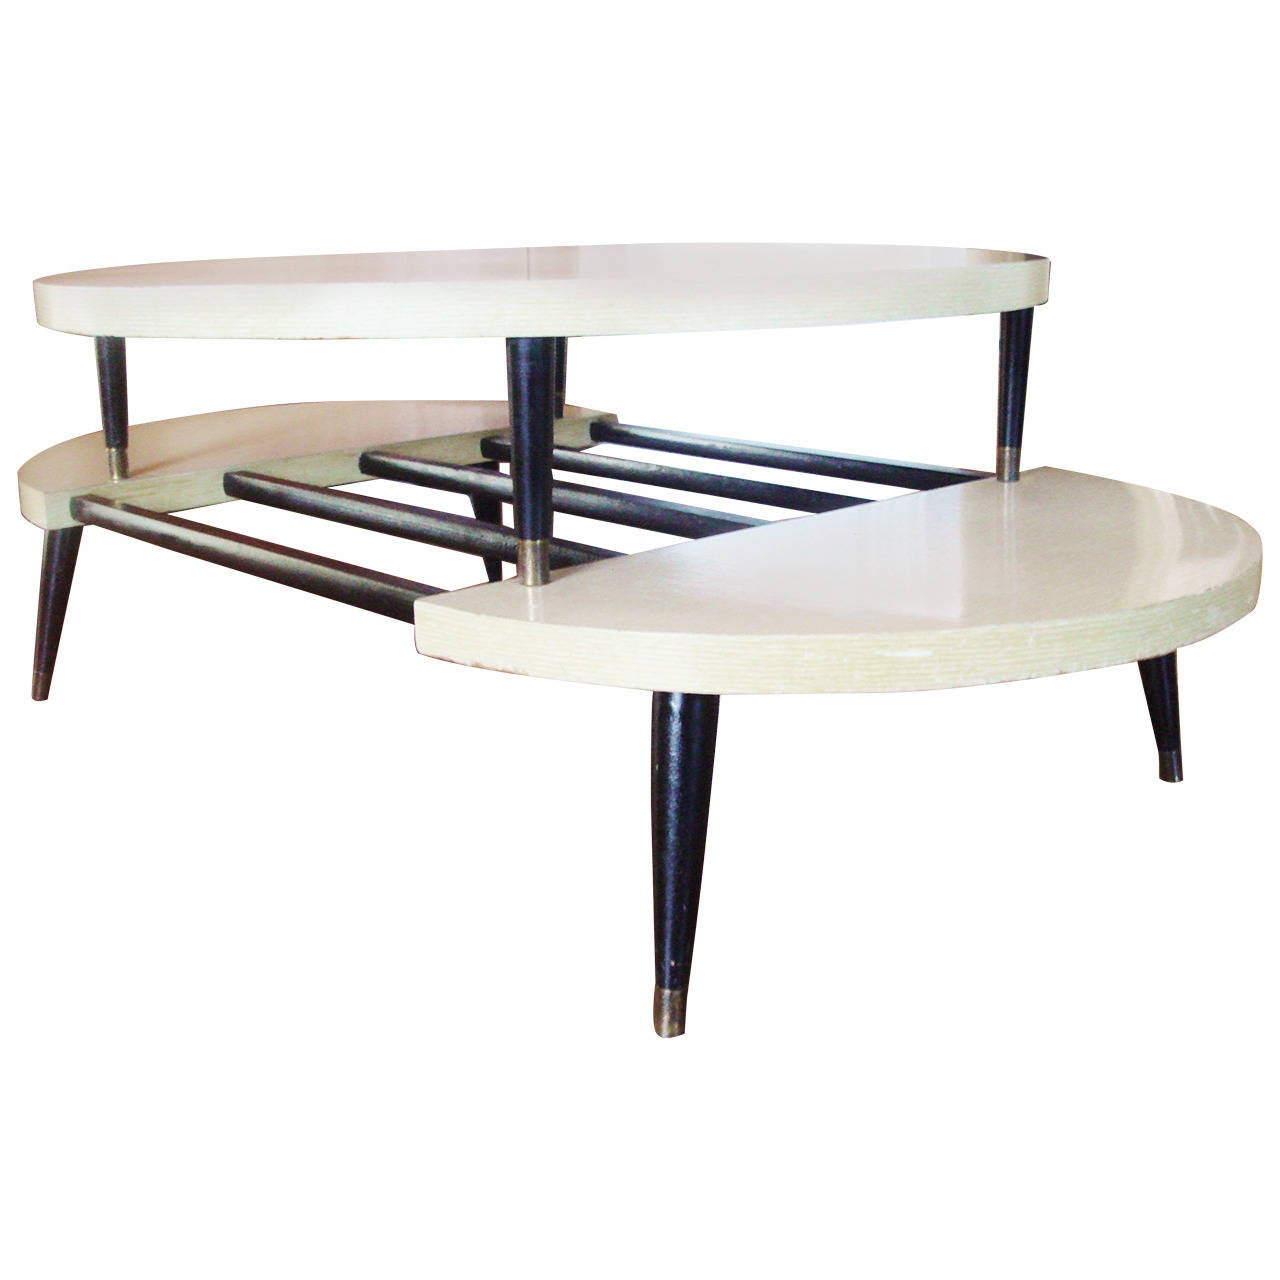 Mid Century Two Tone Coffee Table By Weiman: Rare American Mid-Century Modern Two-Tier, Two-Tone Coffee